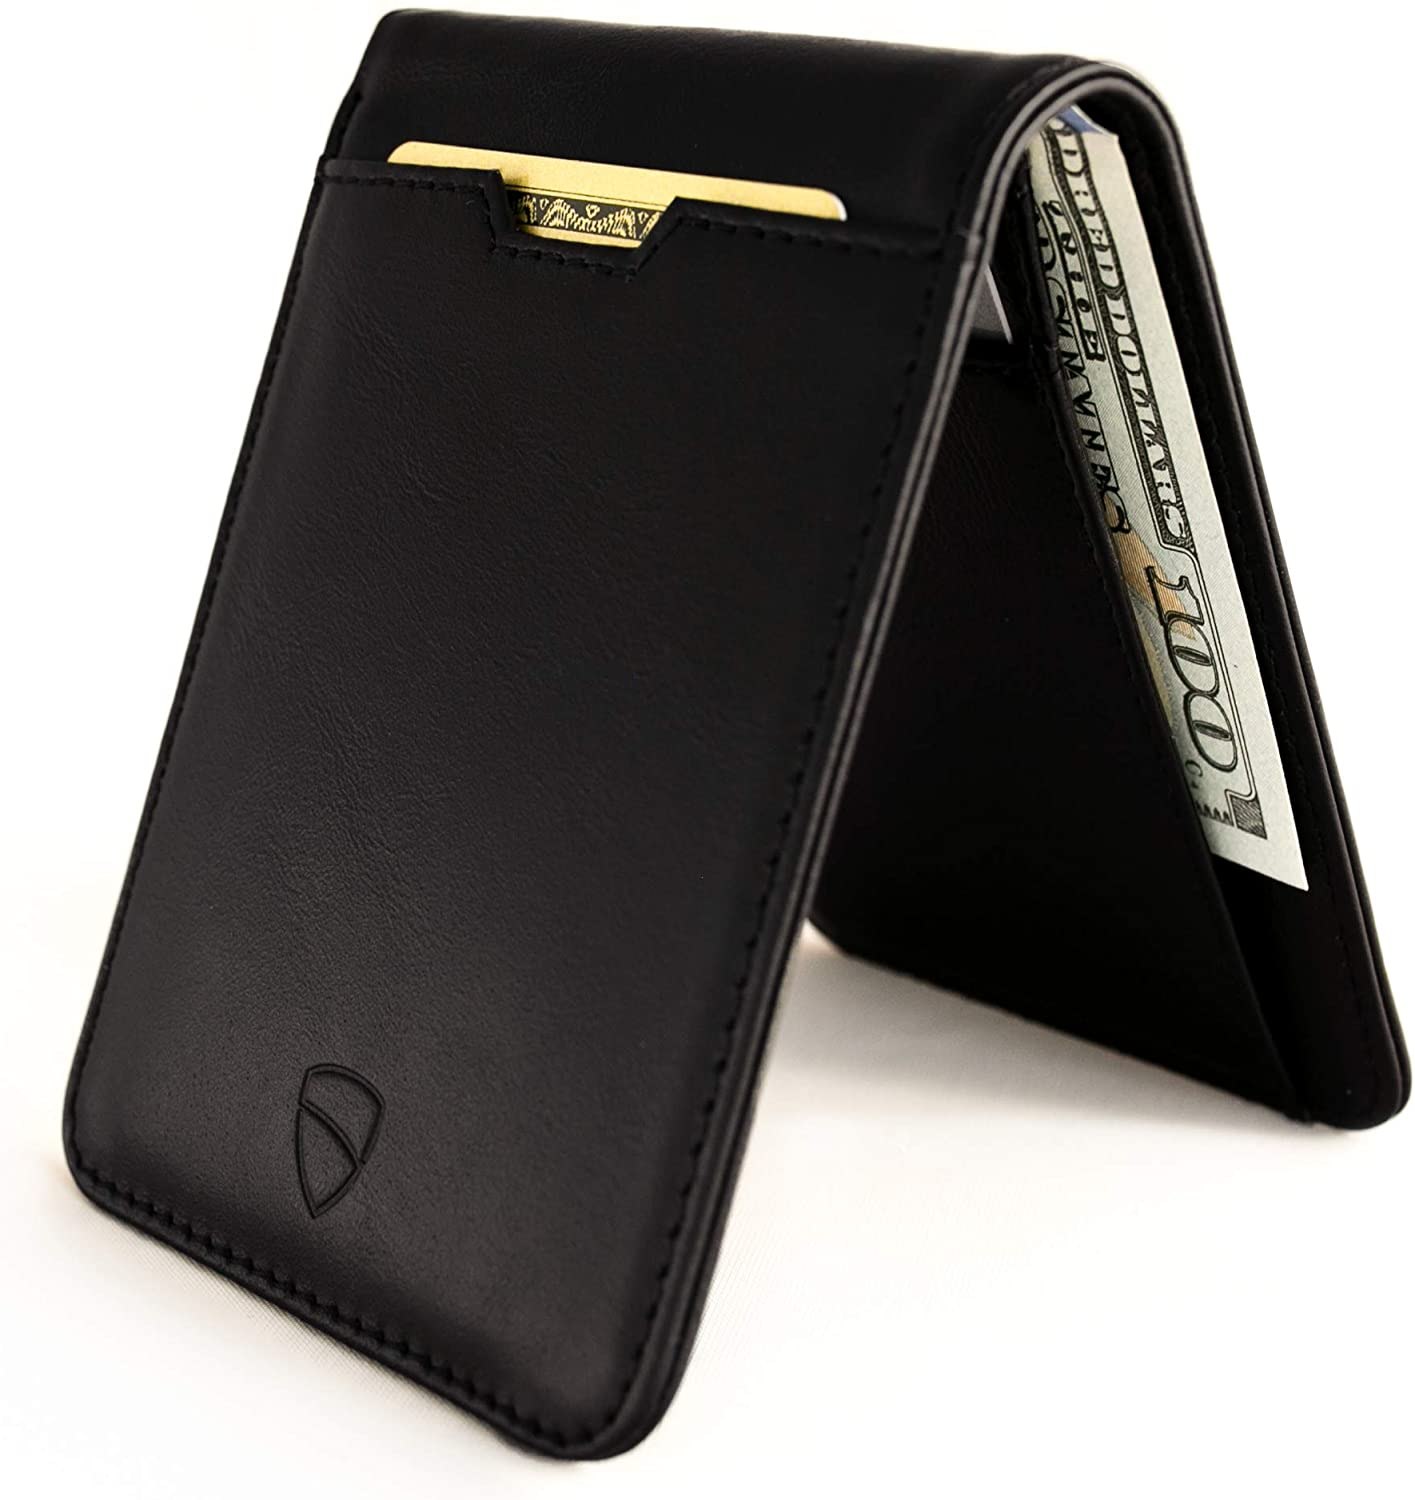 Vaultskin MANHATTAN Slim Minimalist Bifold Wallet and Credit Card Holder with RFID Blocking and Ideal for Front Pocket